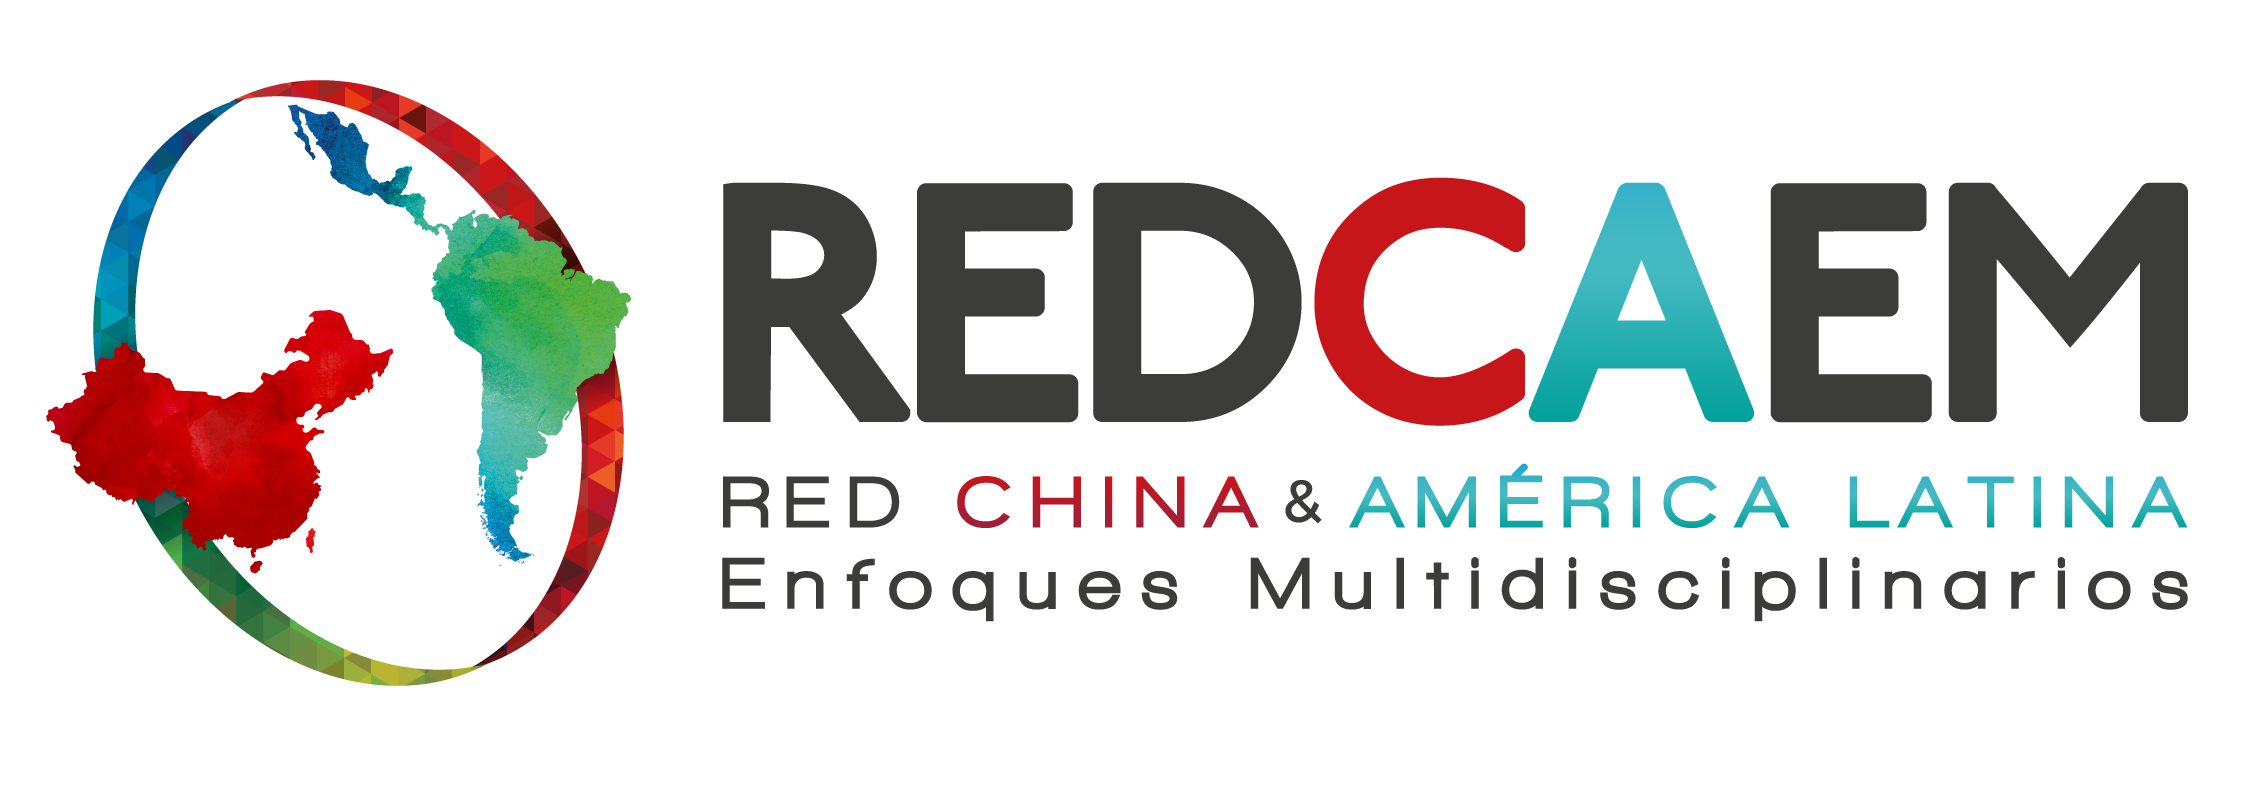 Red China y América Latina